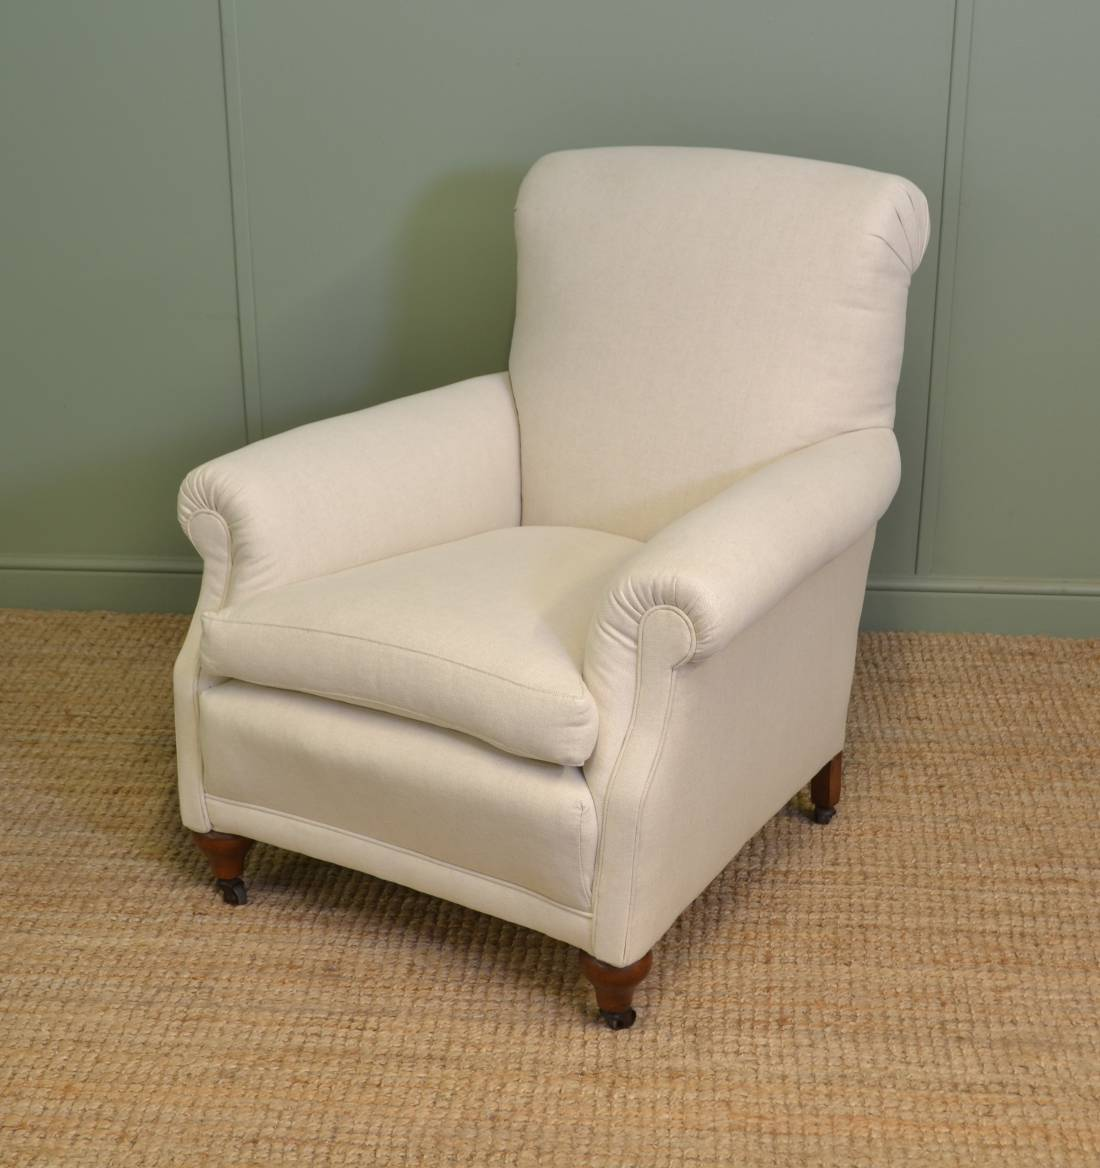 Comfy Antique Edwardian Upholstered Armchair